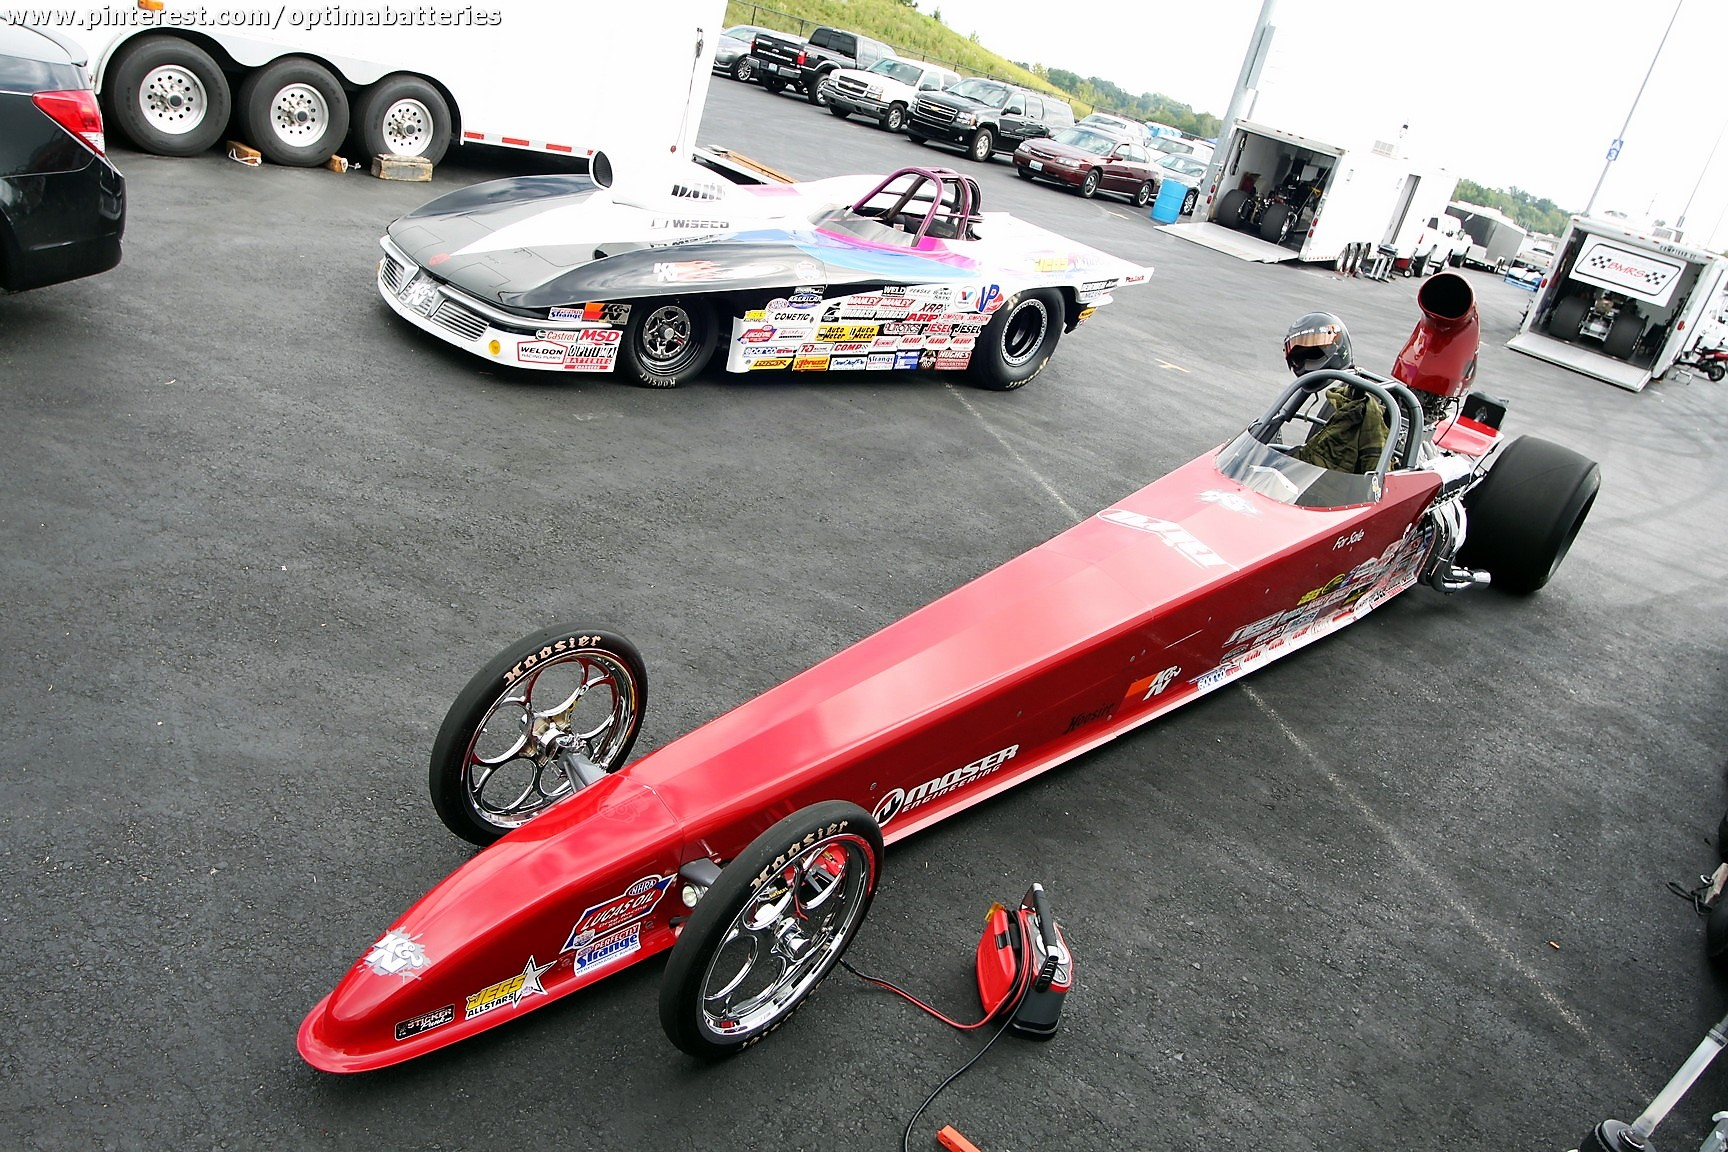 An NHRA dragster has its OPTIMA battery recharged